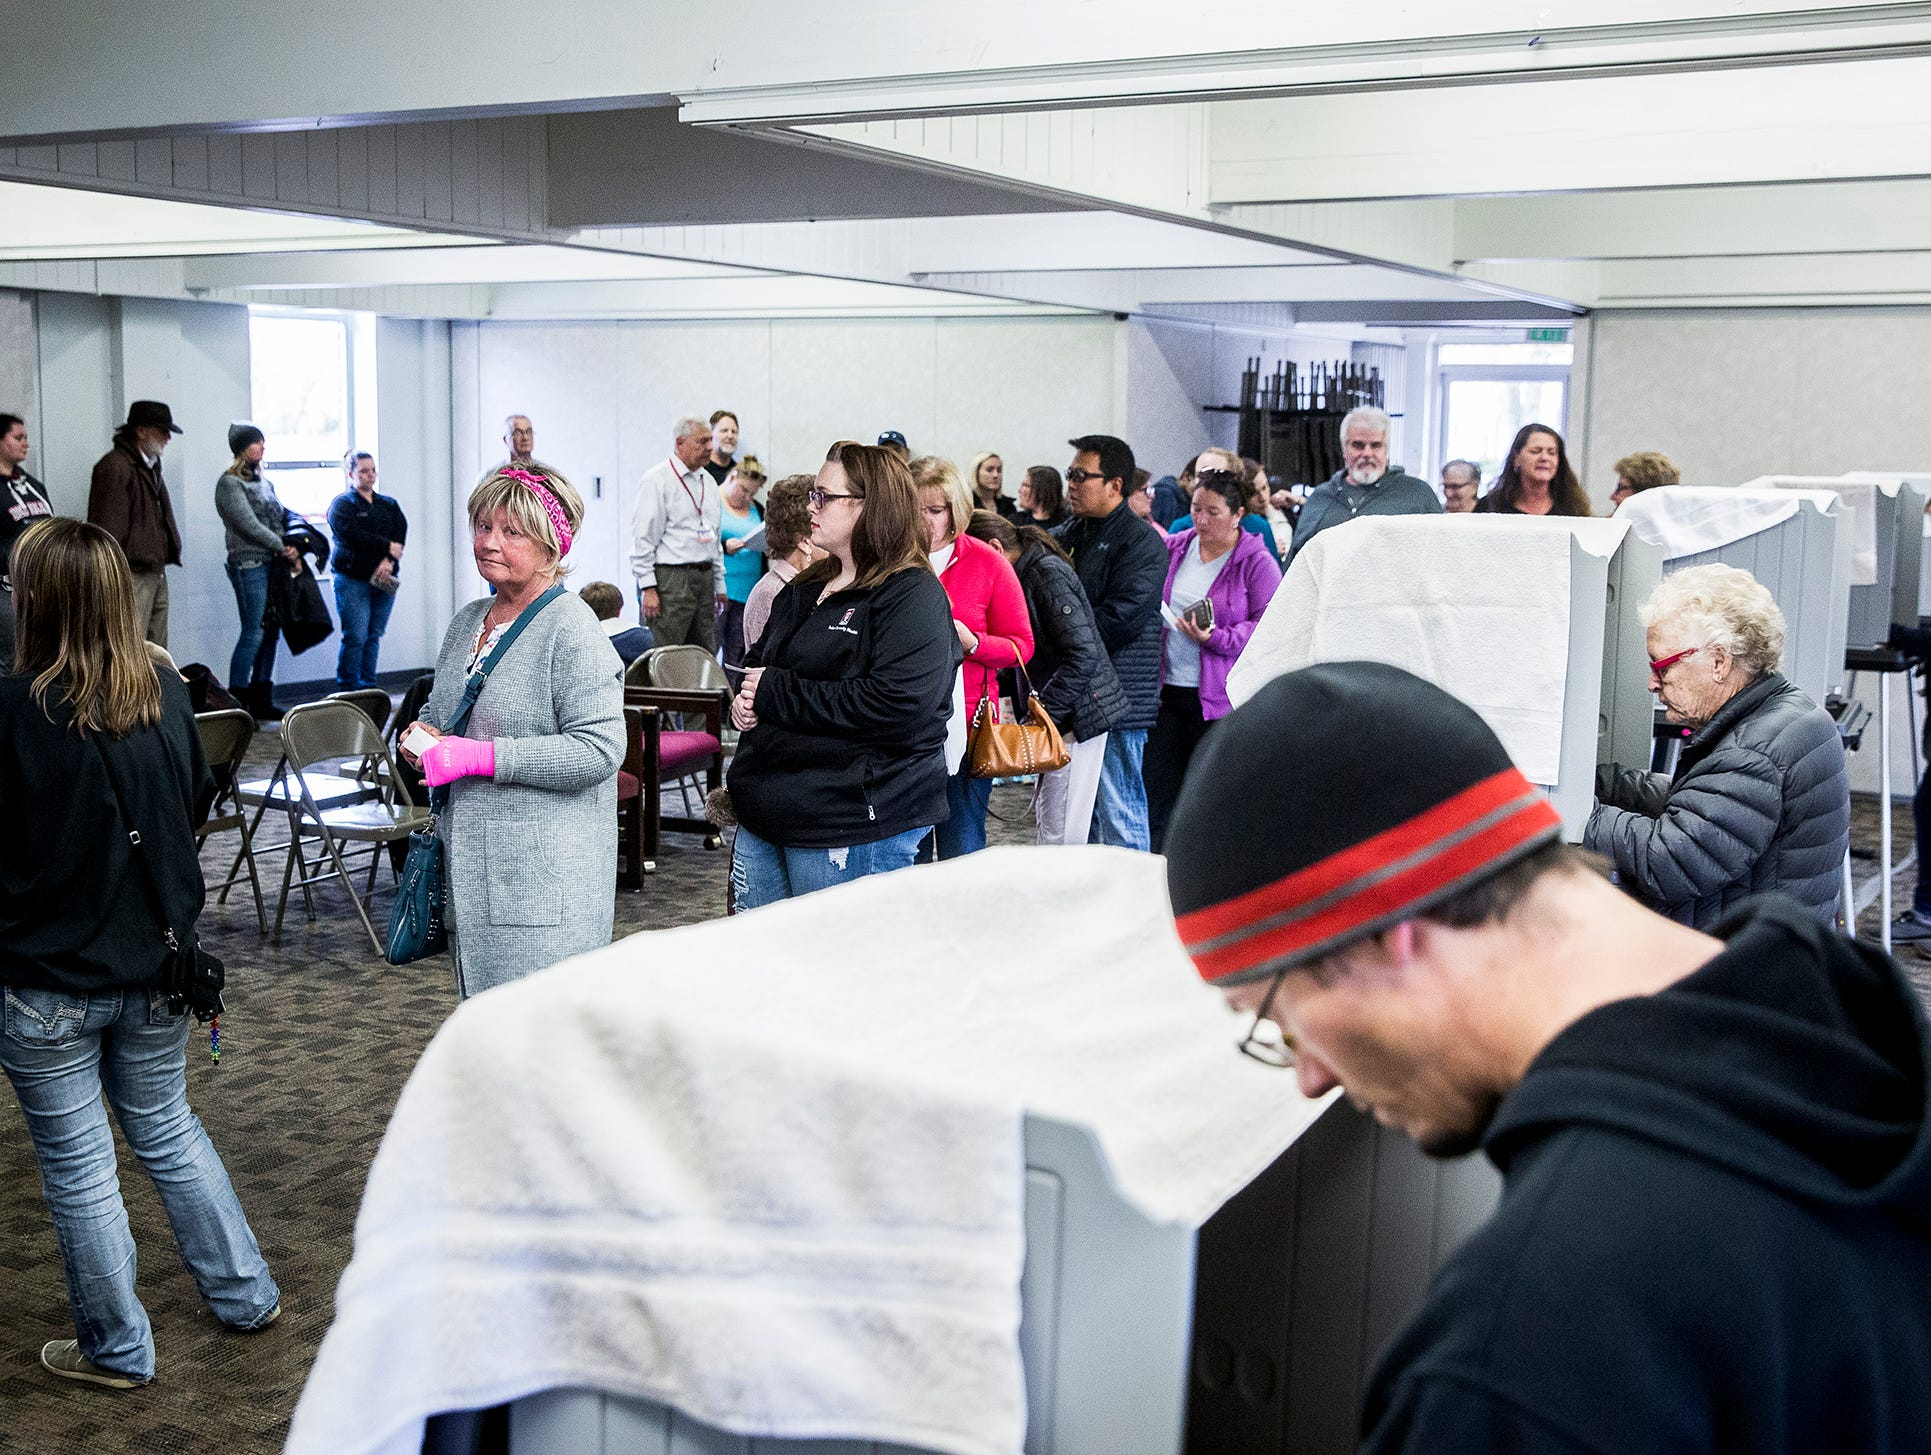 Voters from Precinct 53 and 54 cast their ballots in at Yorktown Church of the Nazarene in Yorktown Tuesday afternoon.